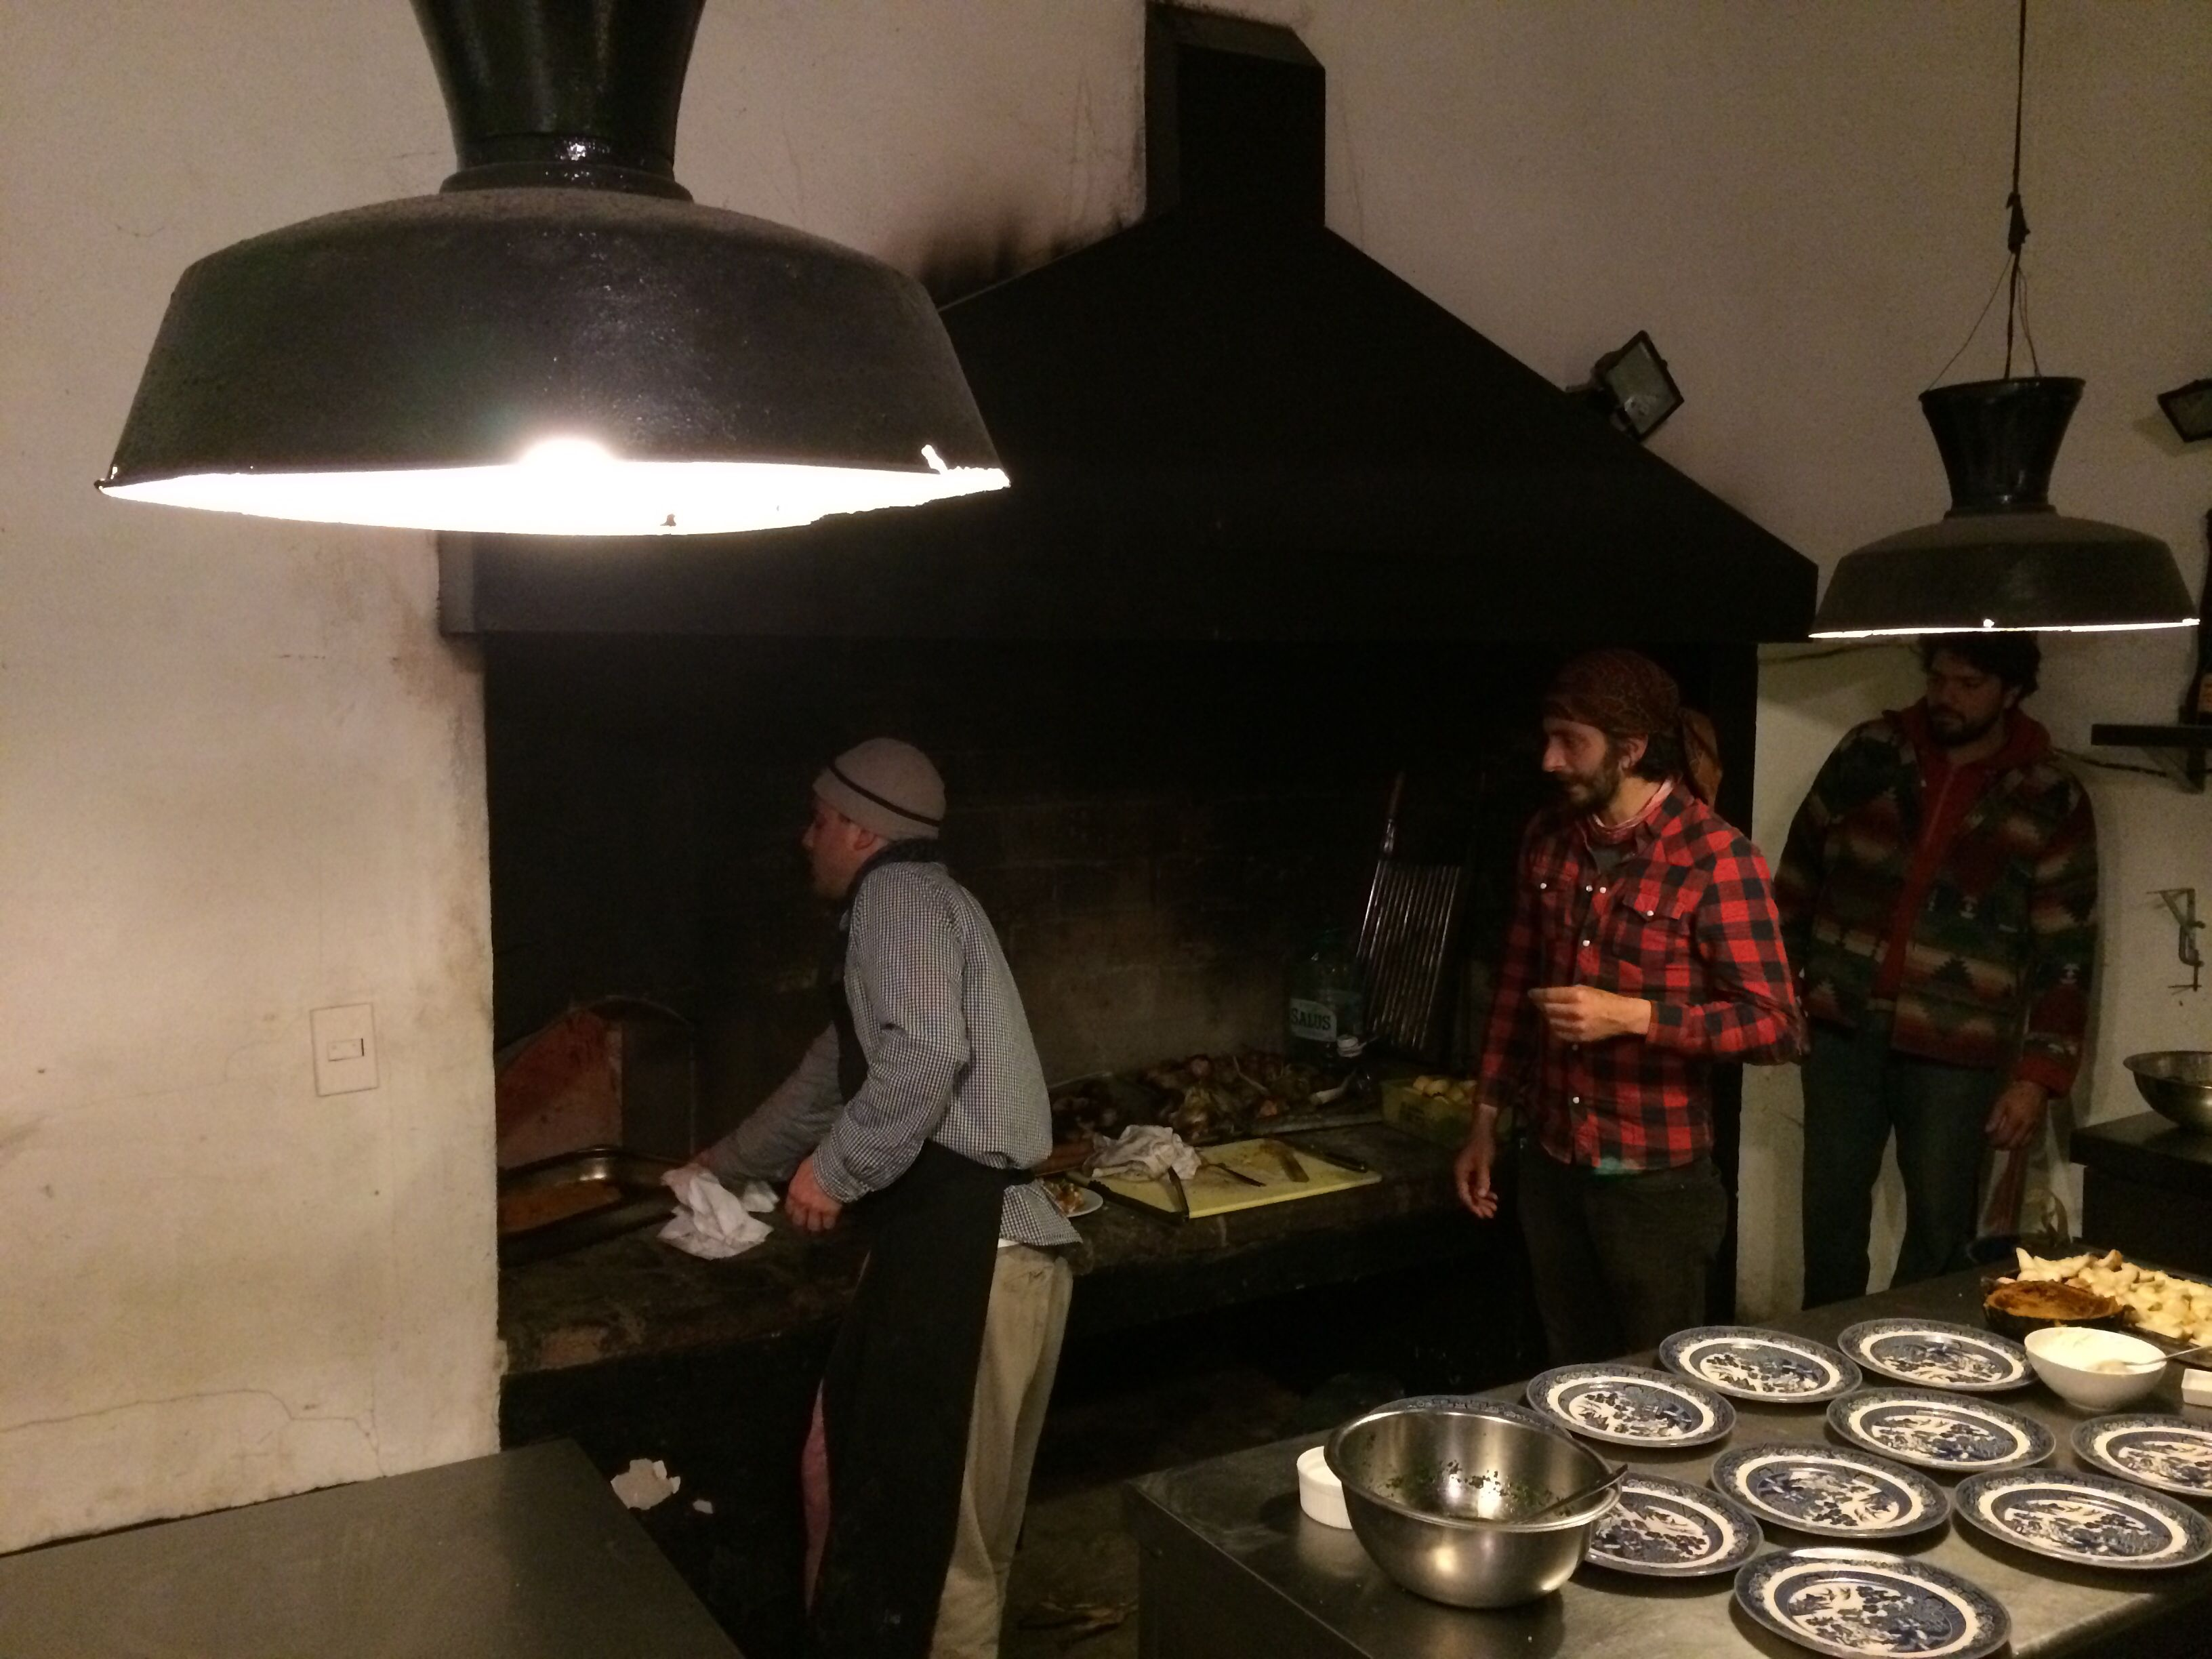 Fire and oven inside Francis mallmann kitchen in Garzon